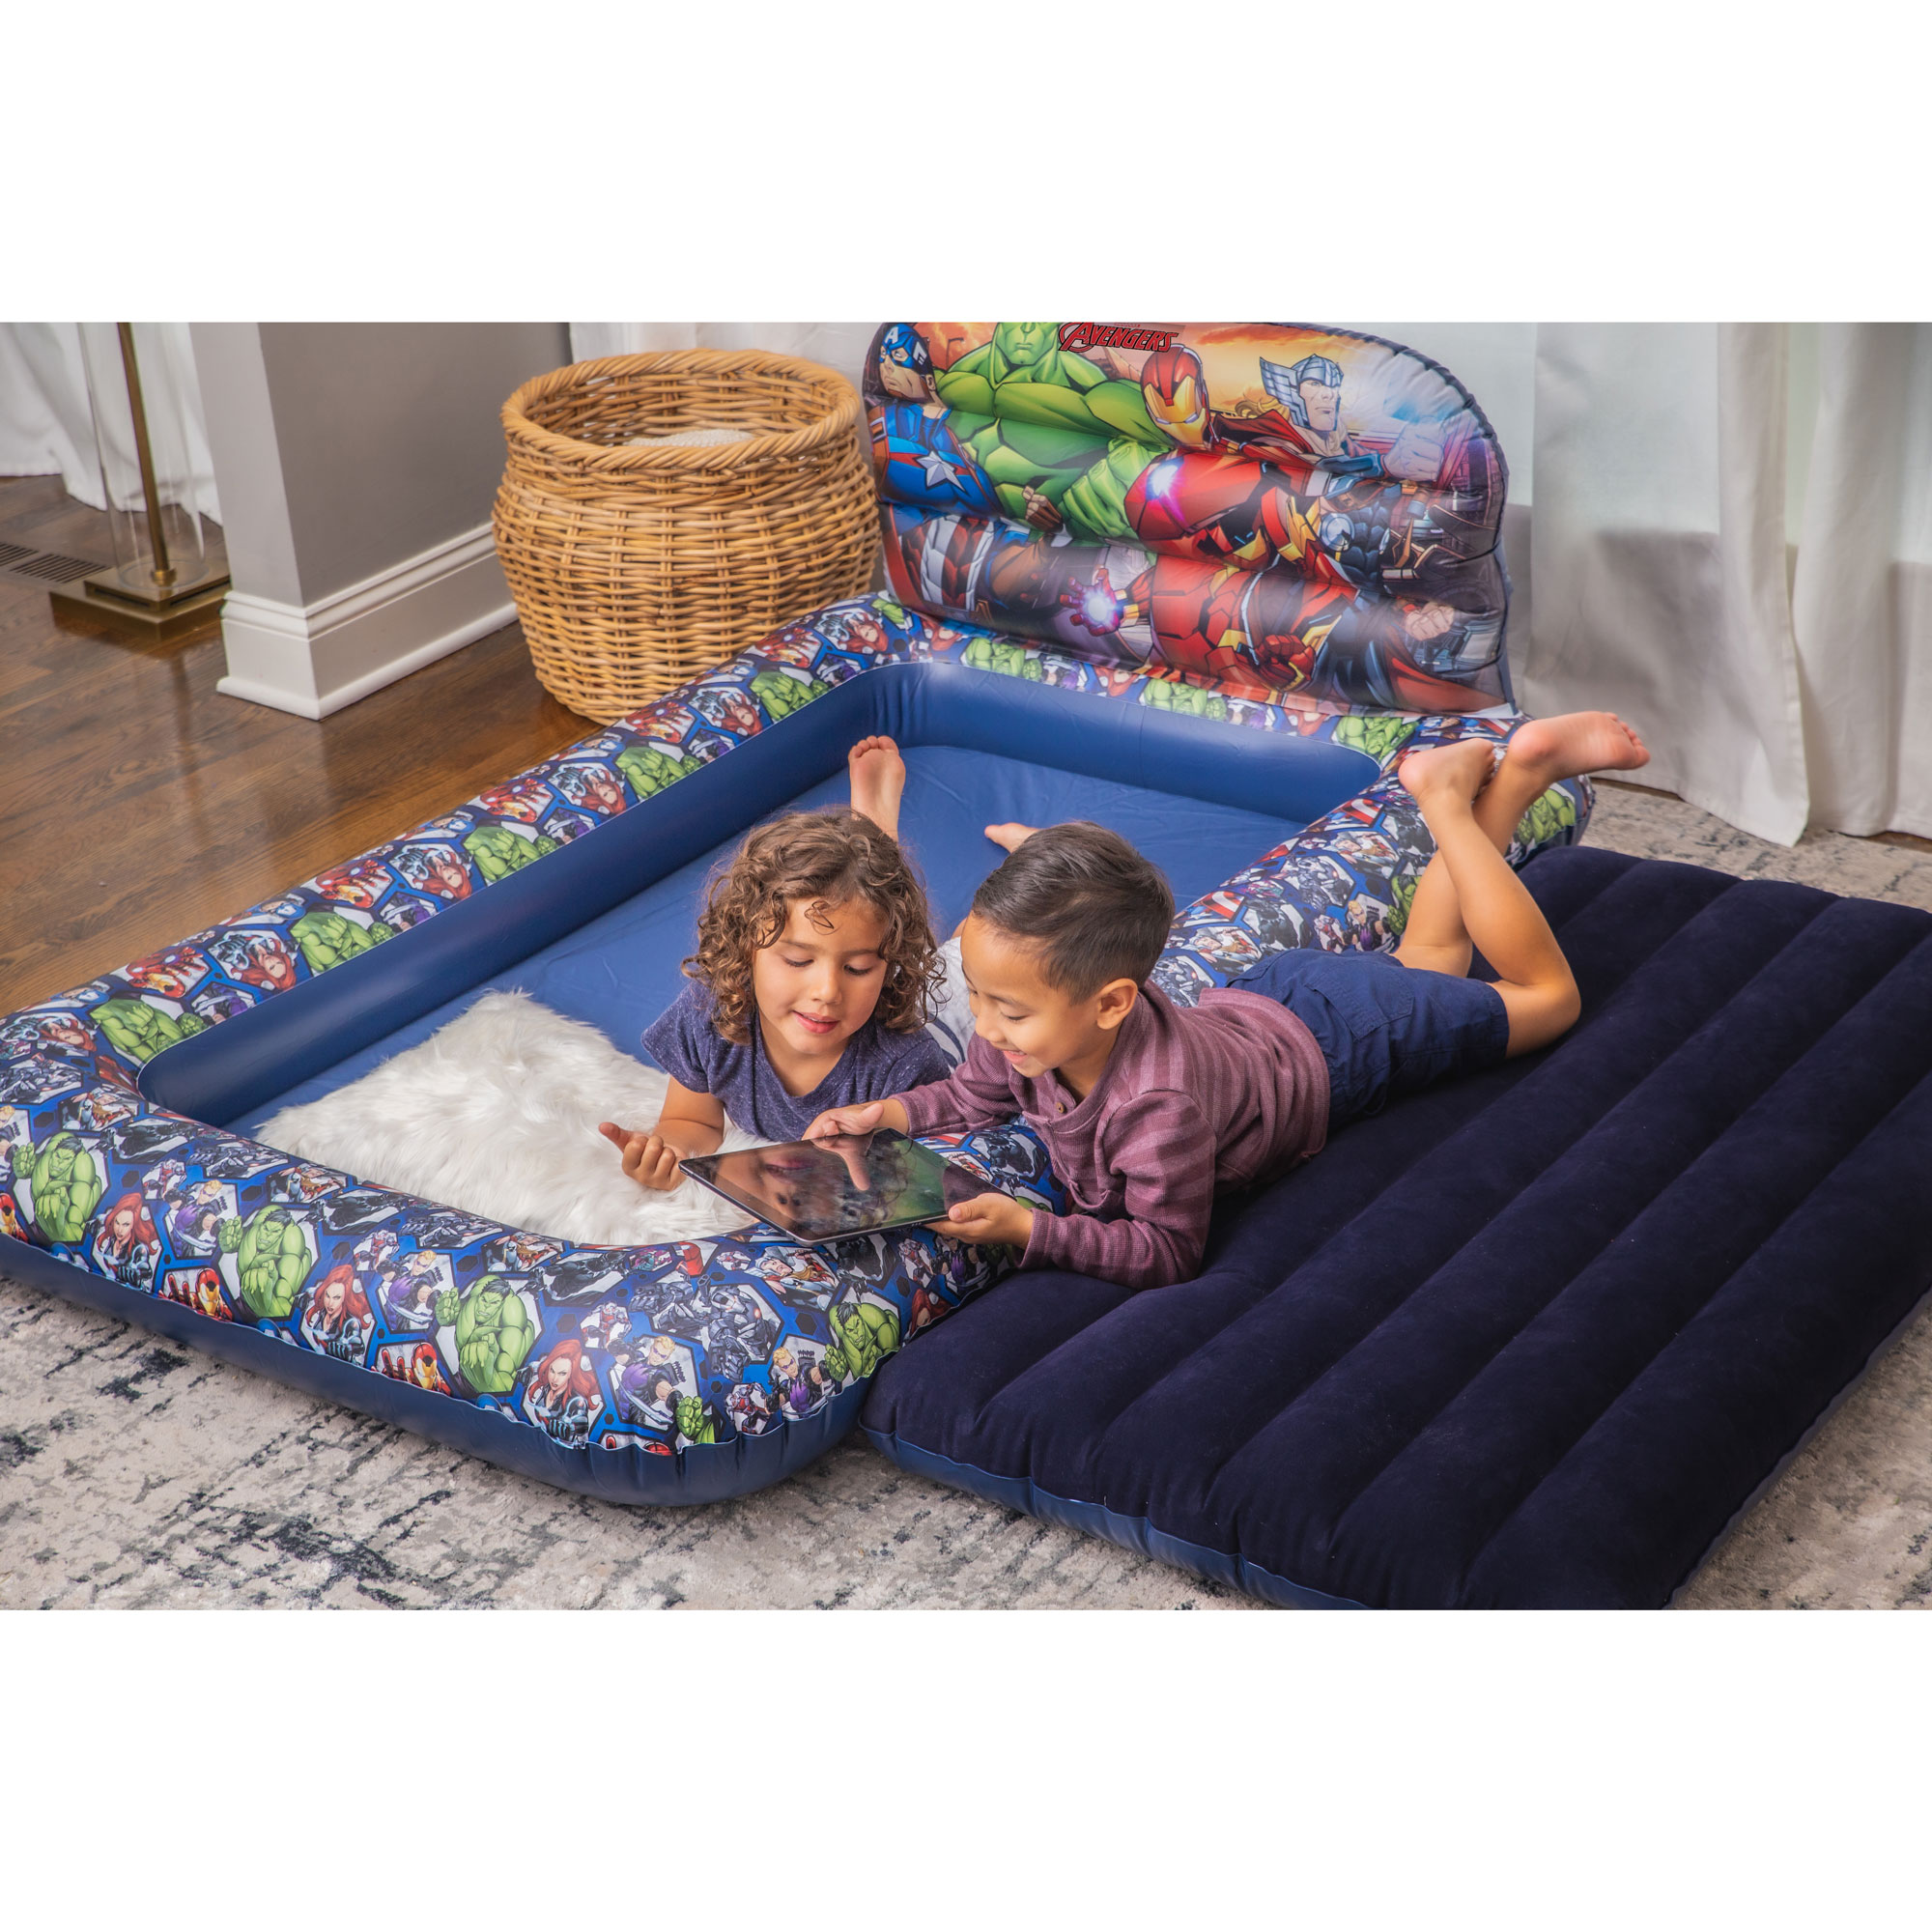 Living iQ Kids Blow Up Air Bed Mattress with Headboard and ...